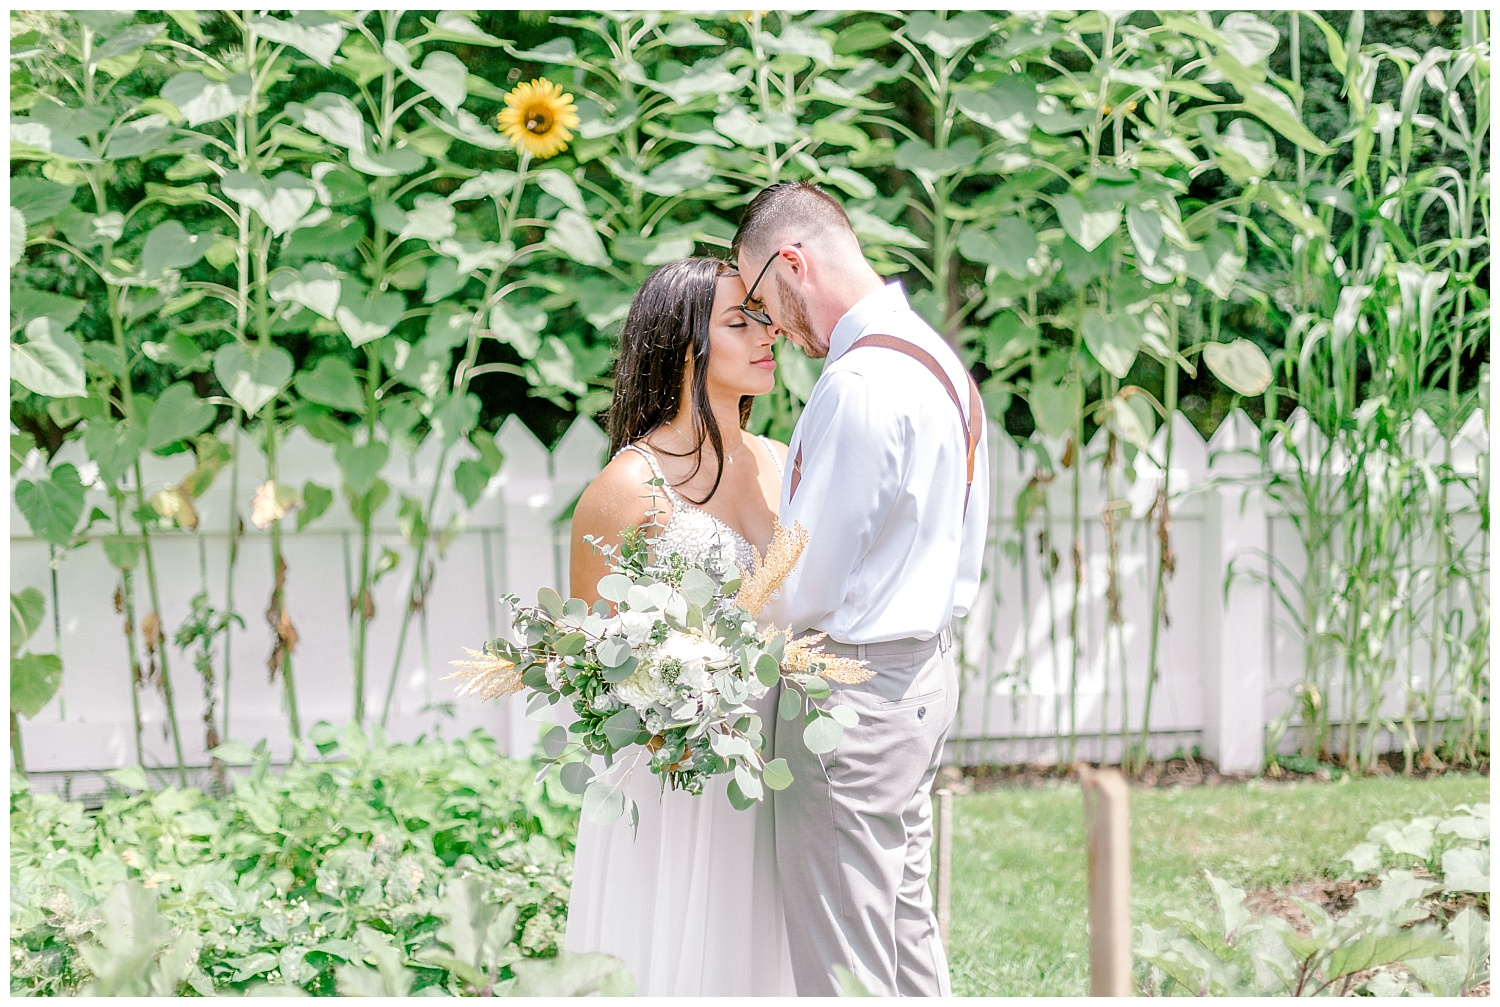 Olive green and white rustic barn wedding at burnside plantation in bethlehem pennsylvania by PA based destination wedding and lifestyle photographer Lytle photography (21).jpg